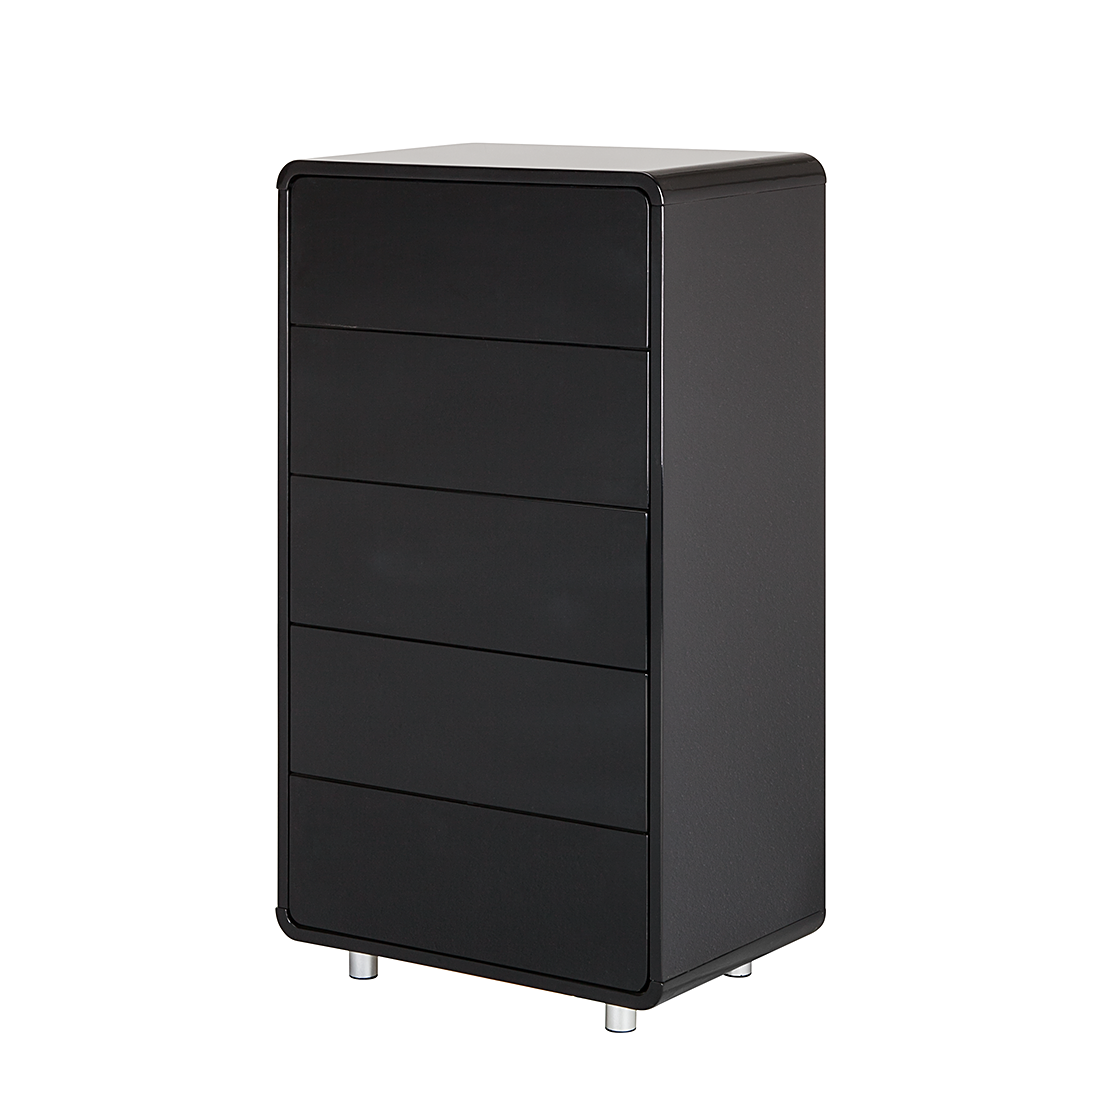 kommode 5 schubladen mdf schwarz hochglanz retro anrichte. Black Bedroom Furniture Sets. Home Design Ideas